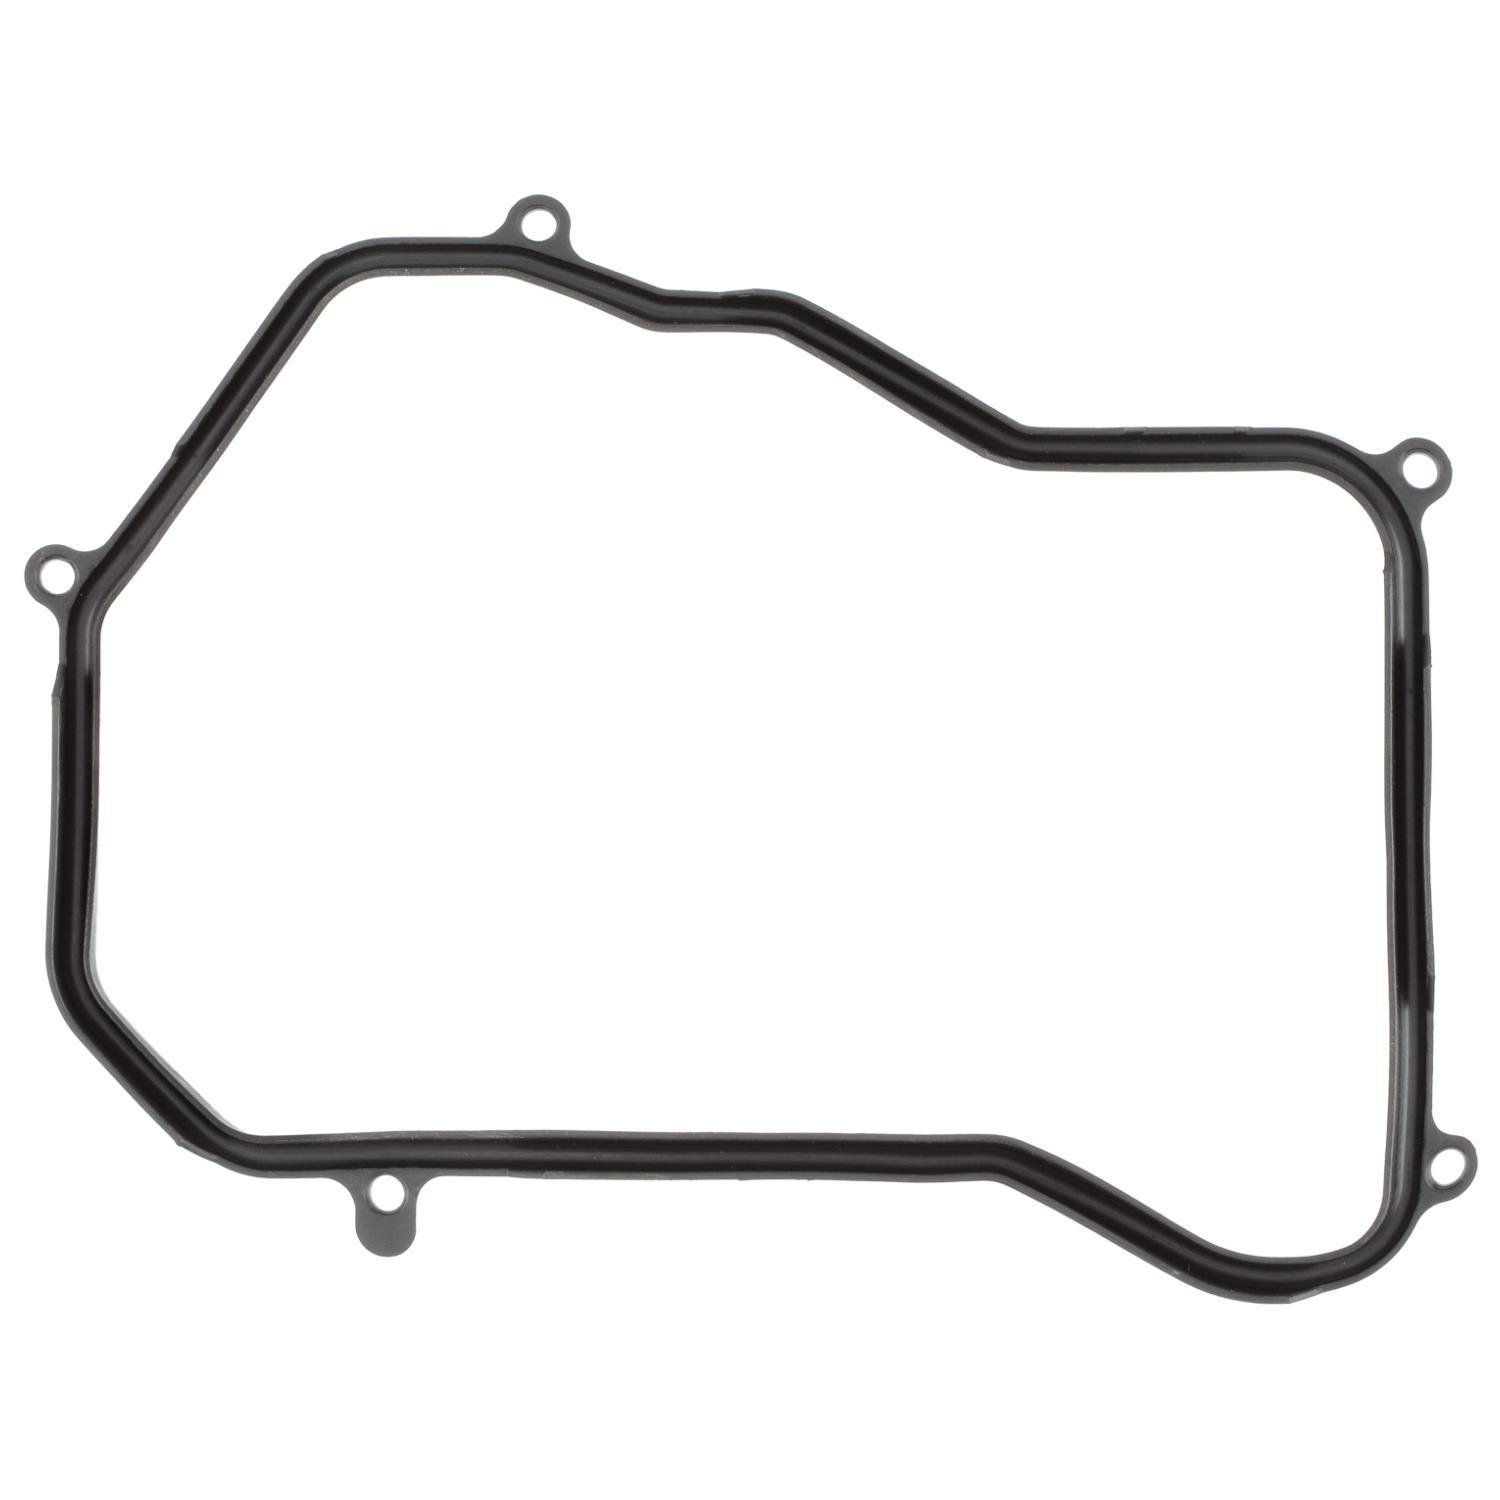 ATP Automotive NG-31 Oil Pan Gasket